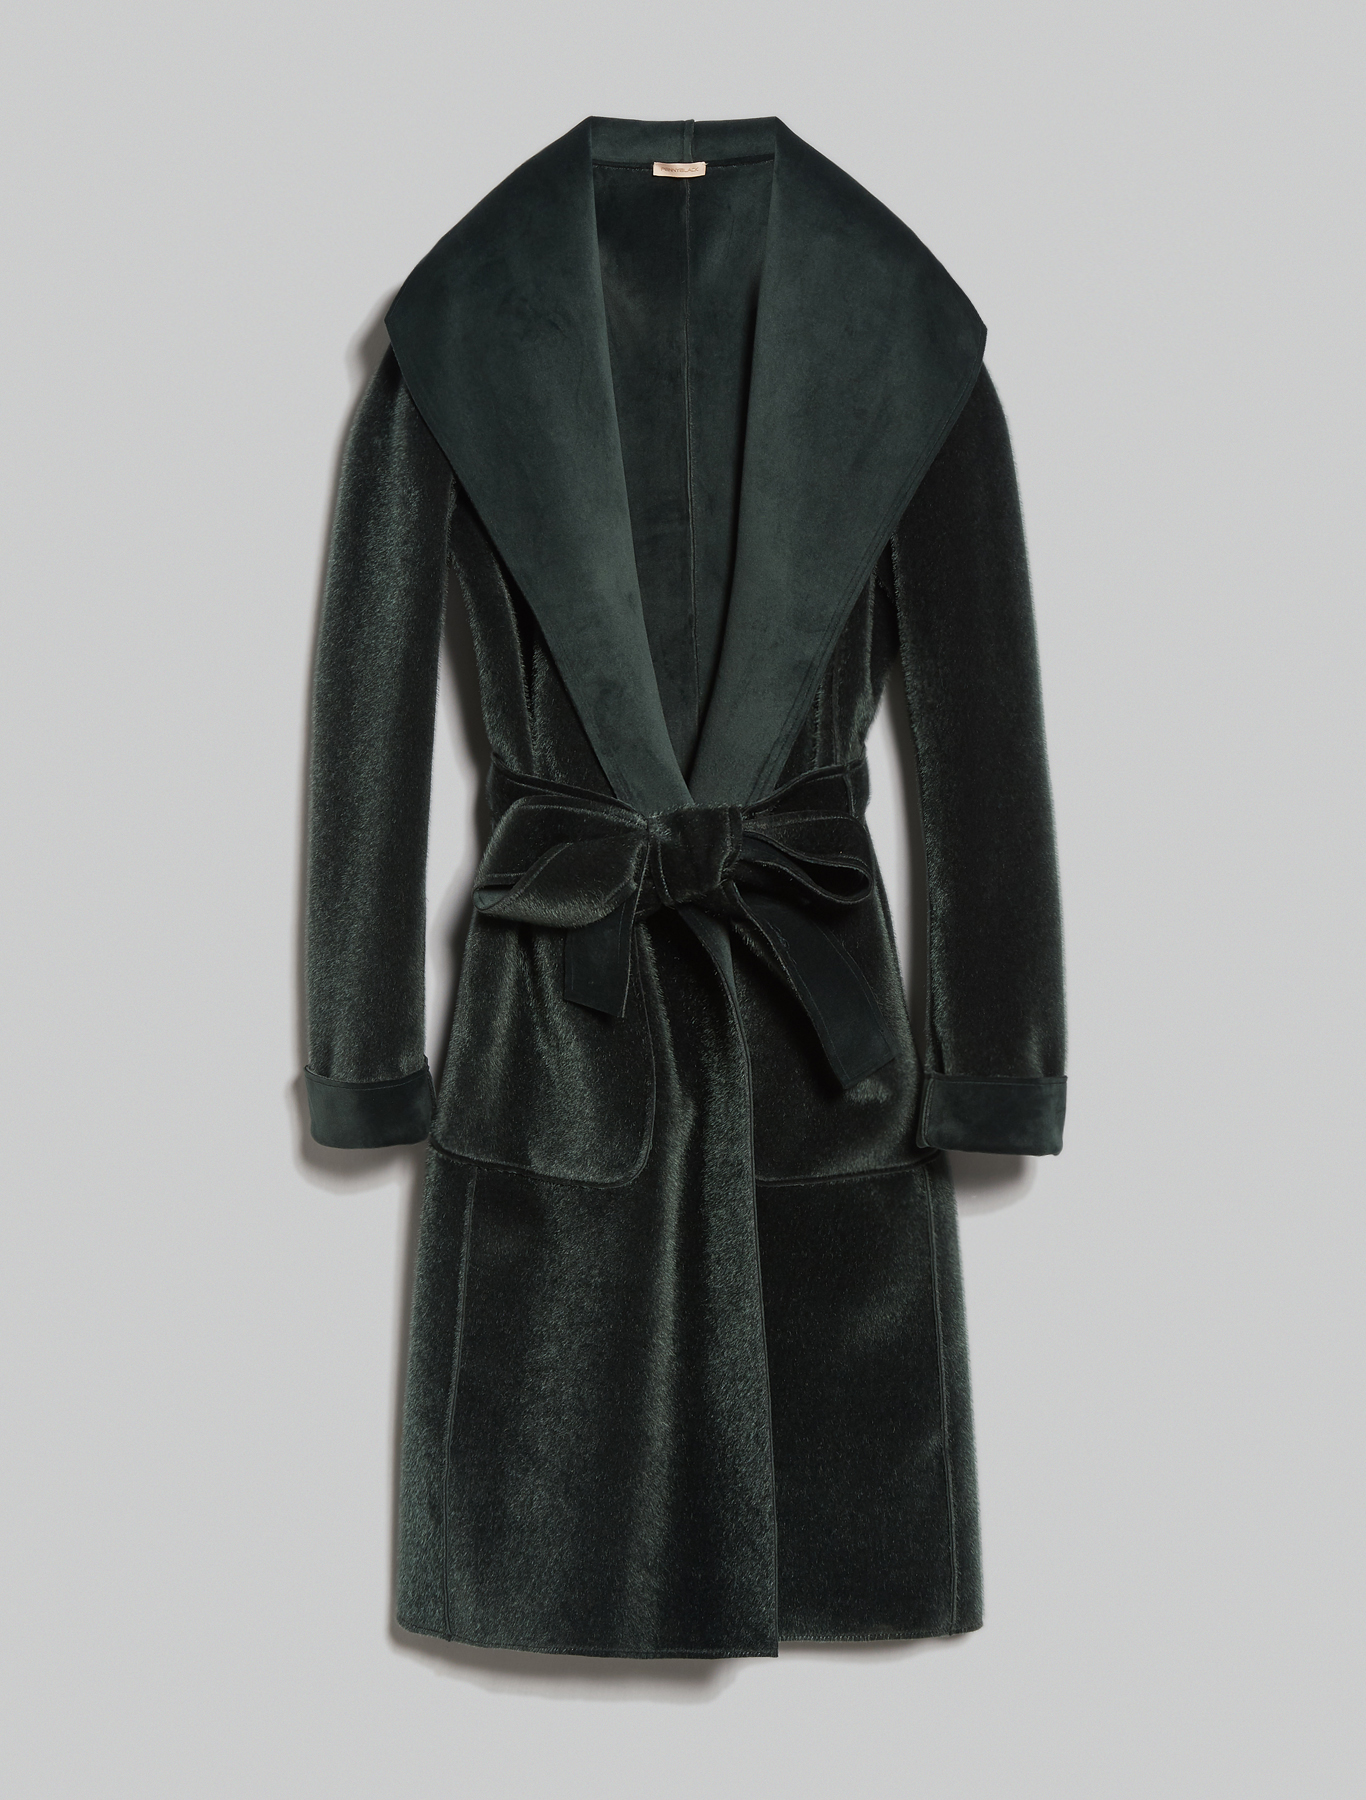 Reversible velvet coat - dark green - pennyblack